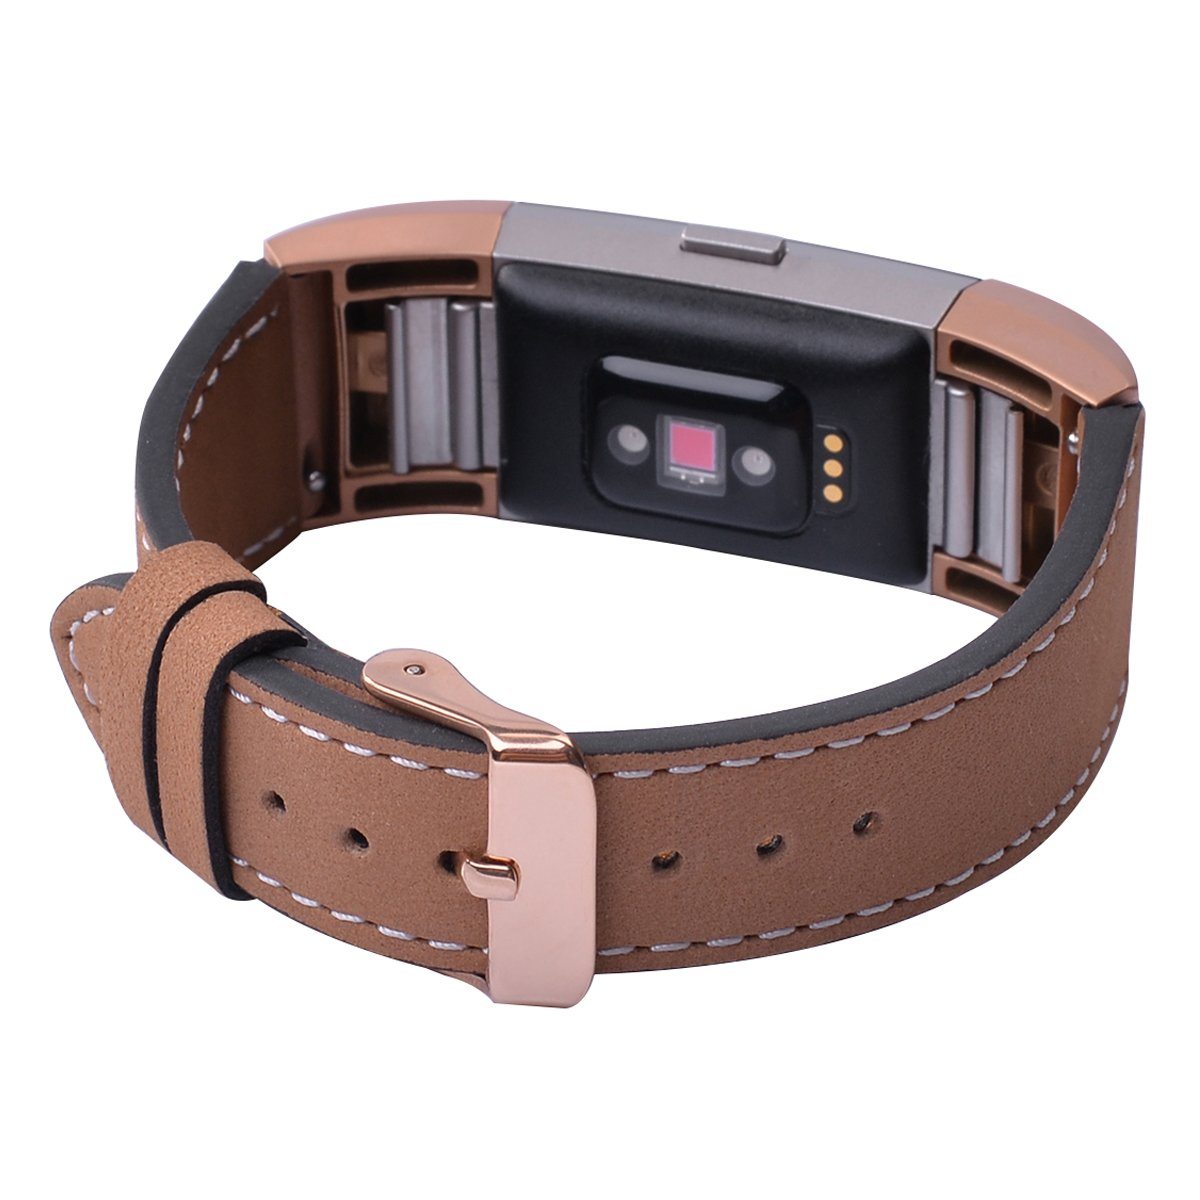 for Fitbit Charge 2 Smartwatch Strap Adapter Classic Genuine Leather Watch Band Wristband Apricot Small